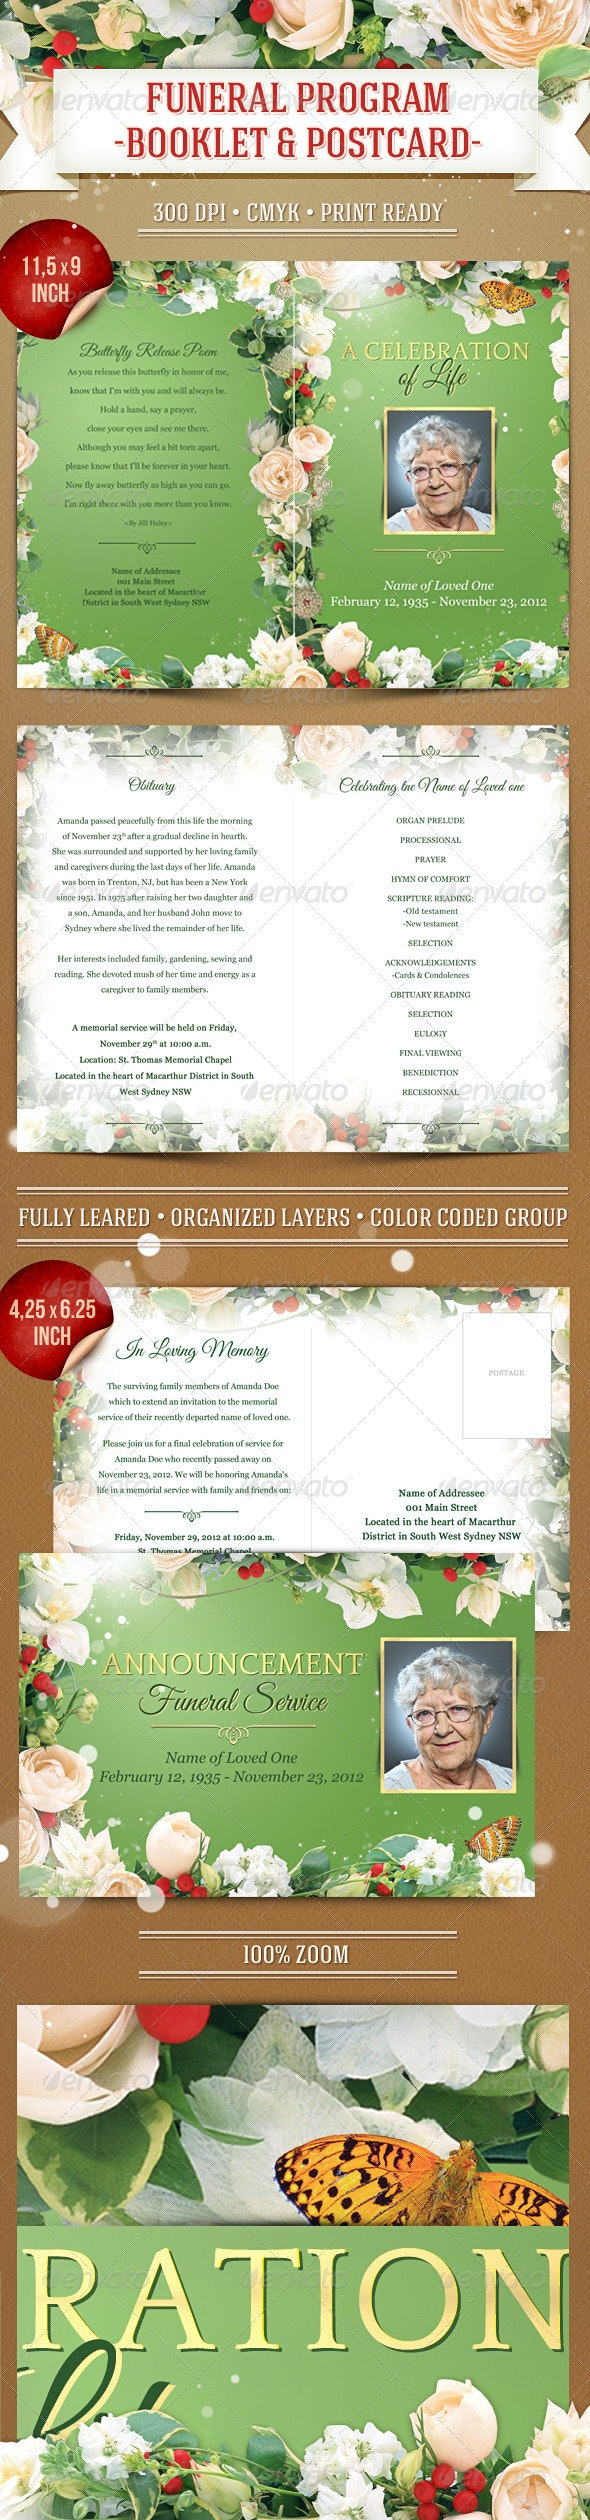 Funeral Program Template - Booklet & Postcard - Anniversary Greeting Cards